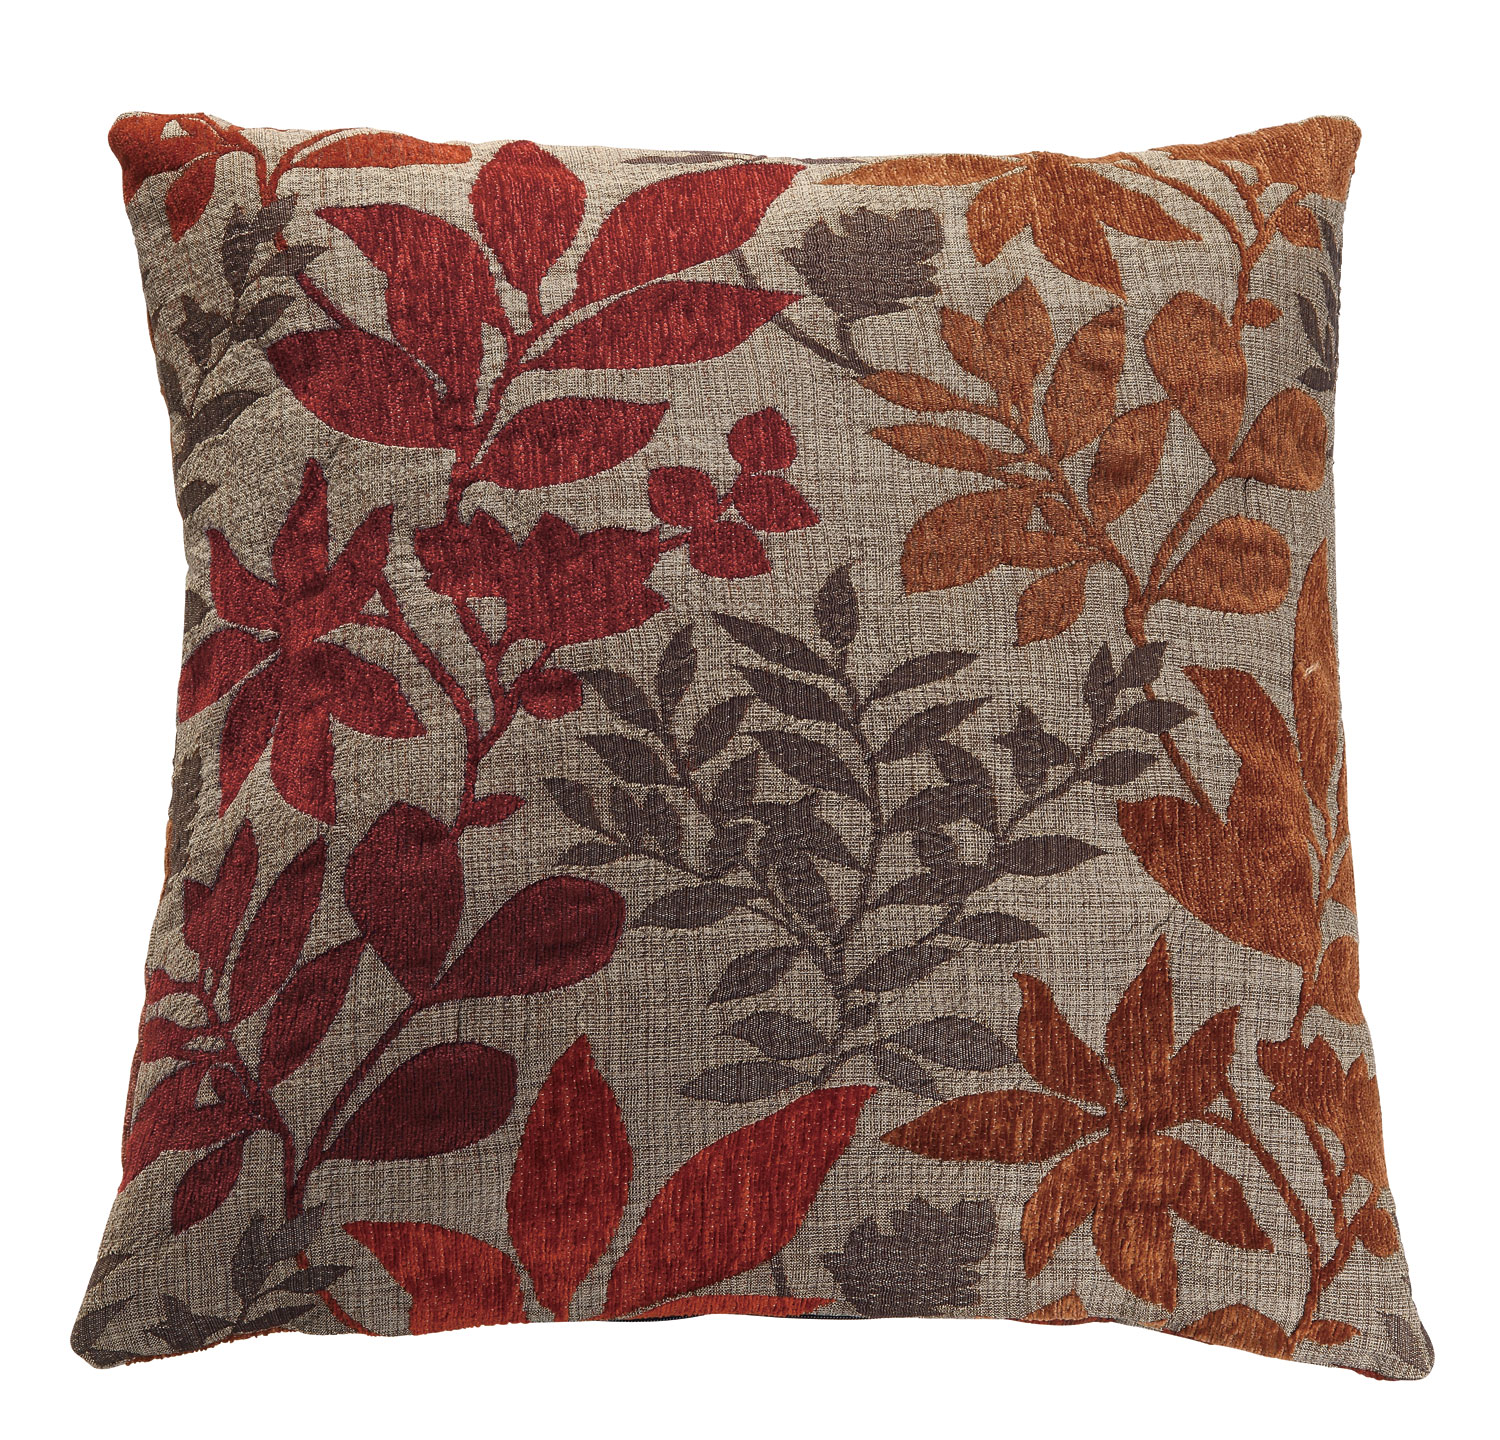 Coaster Throw Pillows Pillow - Item Number: 905017